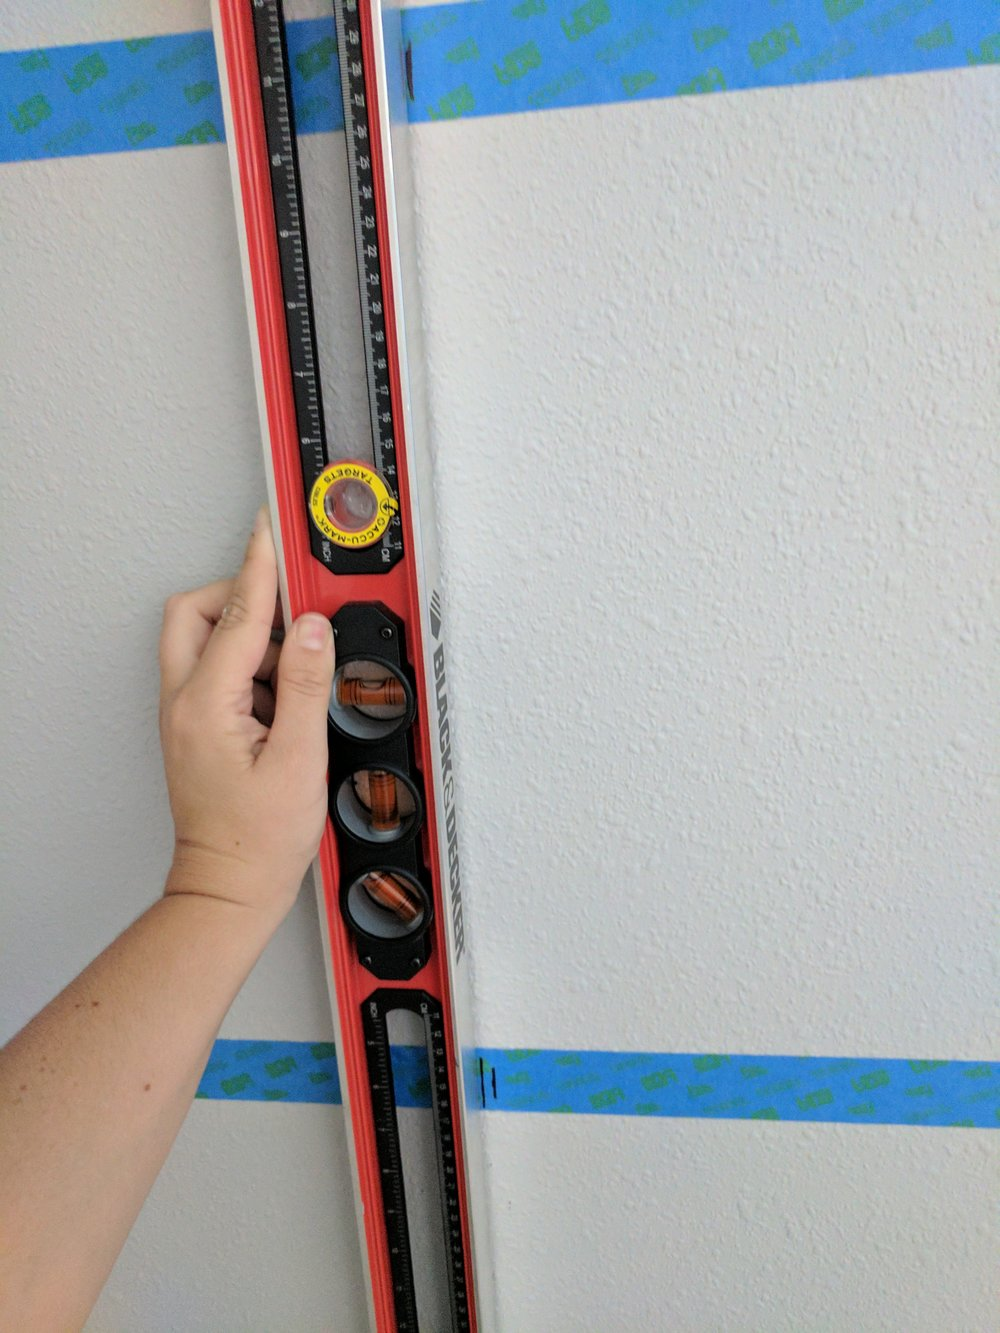 When hanging more than one shelf, remember to not only level the tape but also the hole marks on multiple shelves. This ensure your brackets like up with the shelf above and below it.